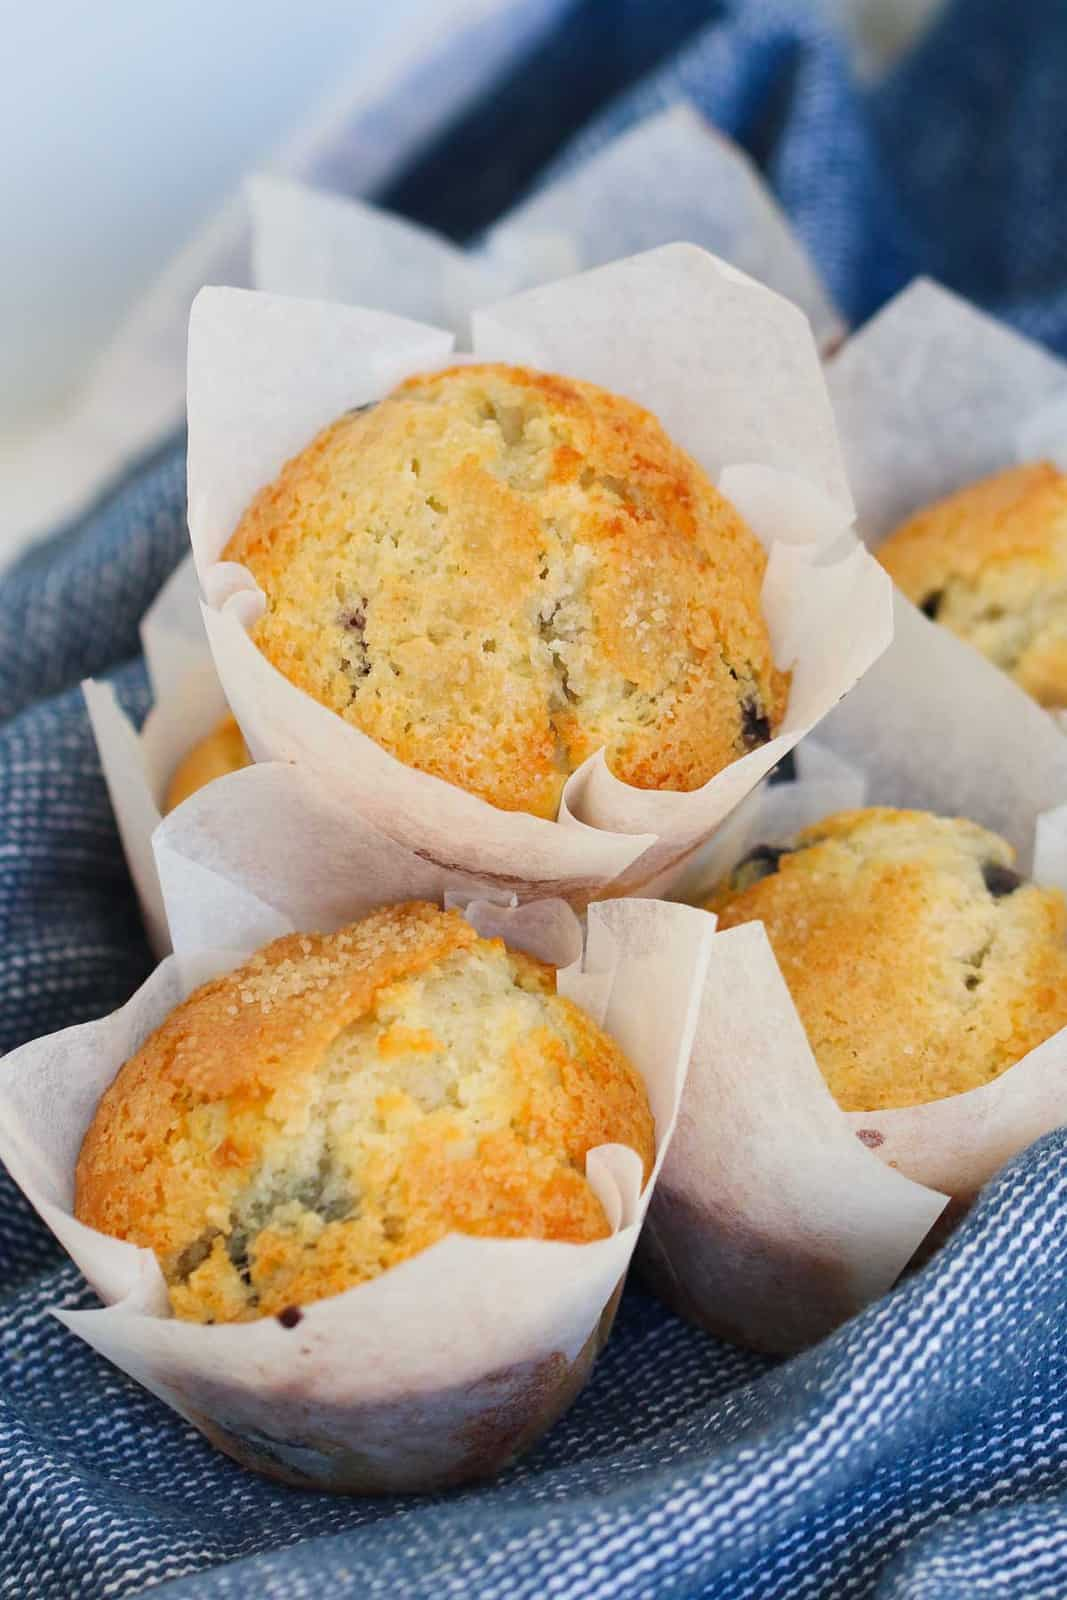 A stack of fruit muffins with sugar topping.